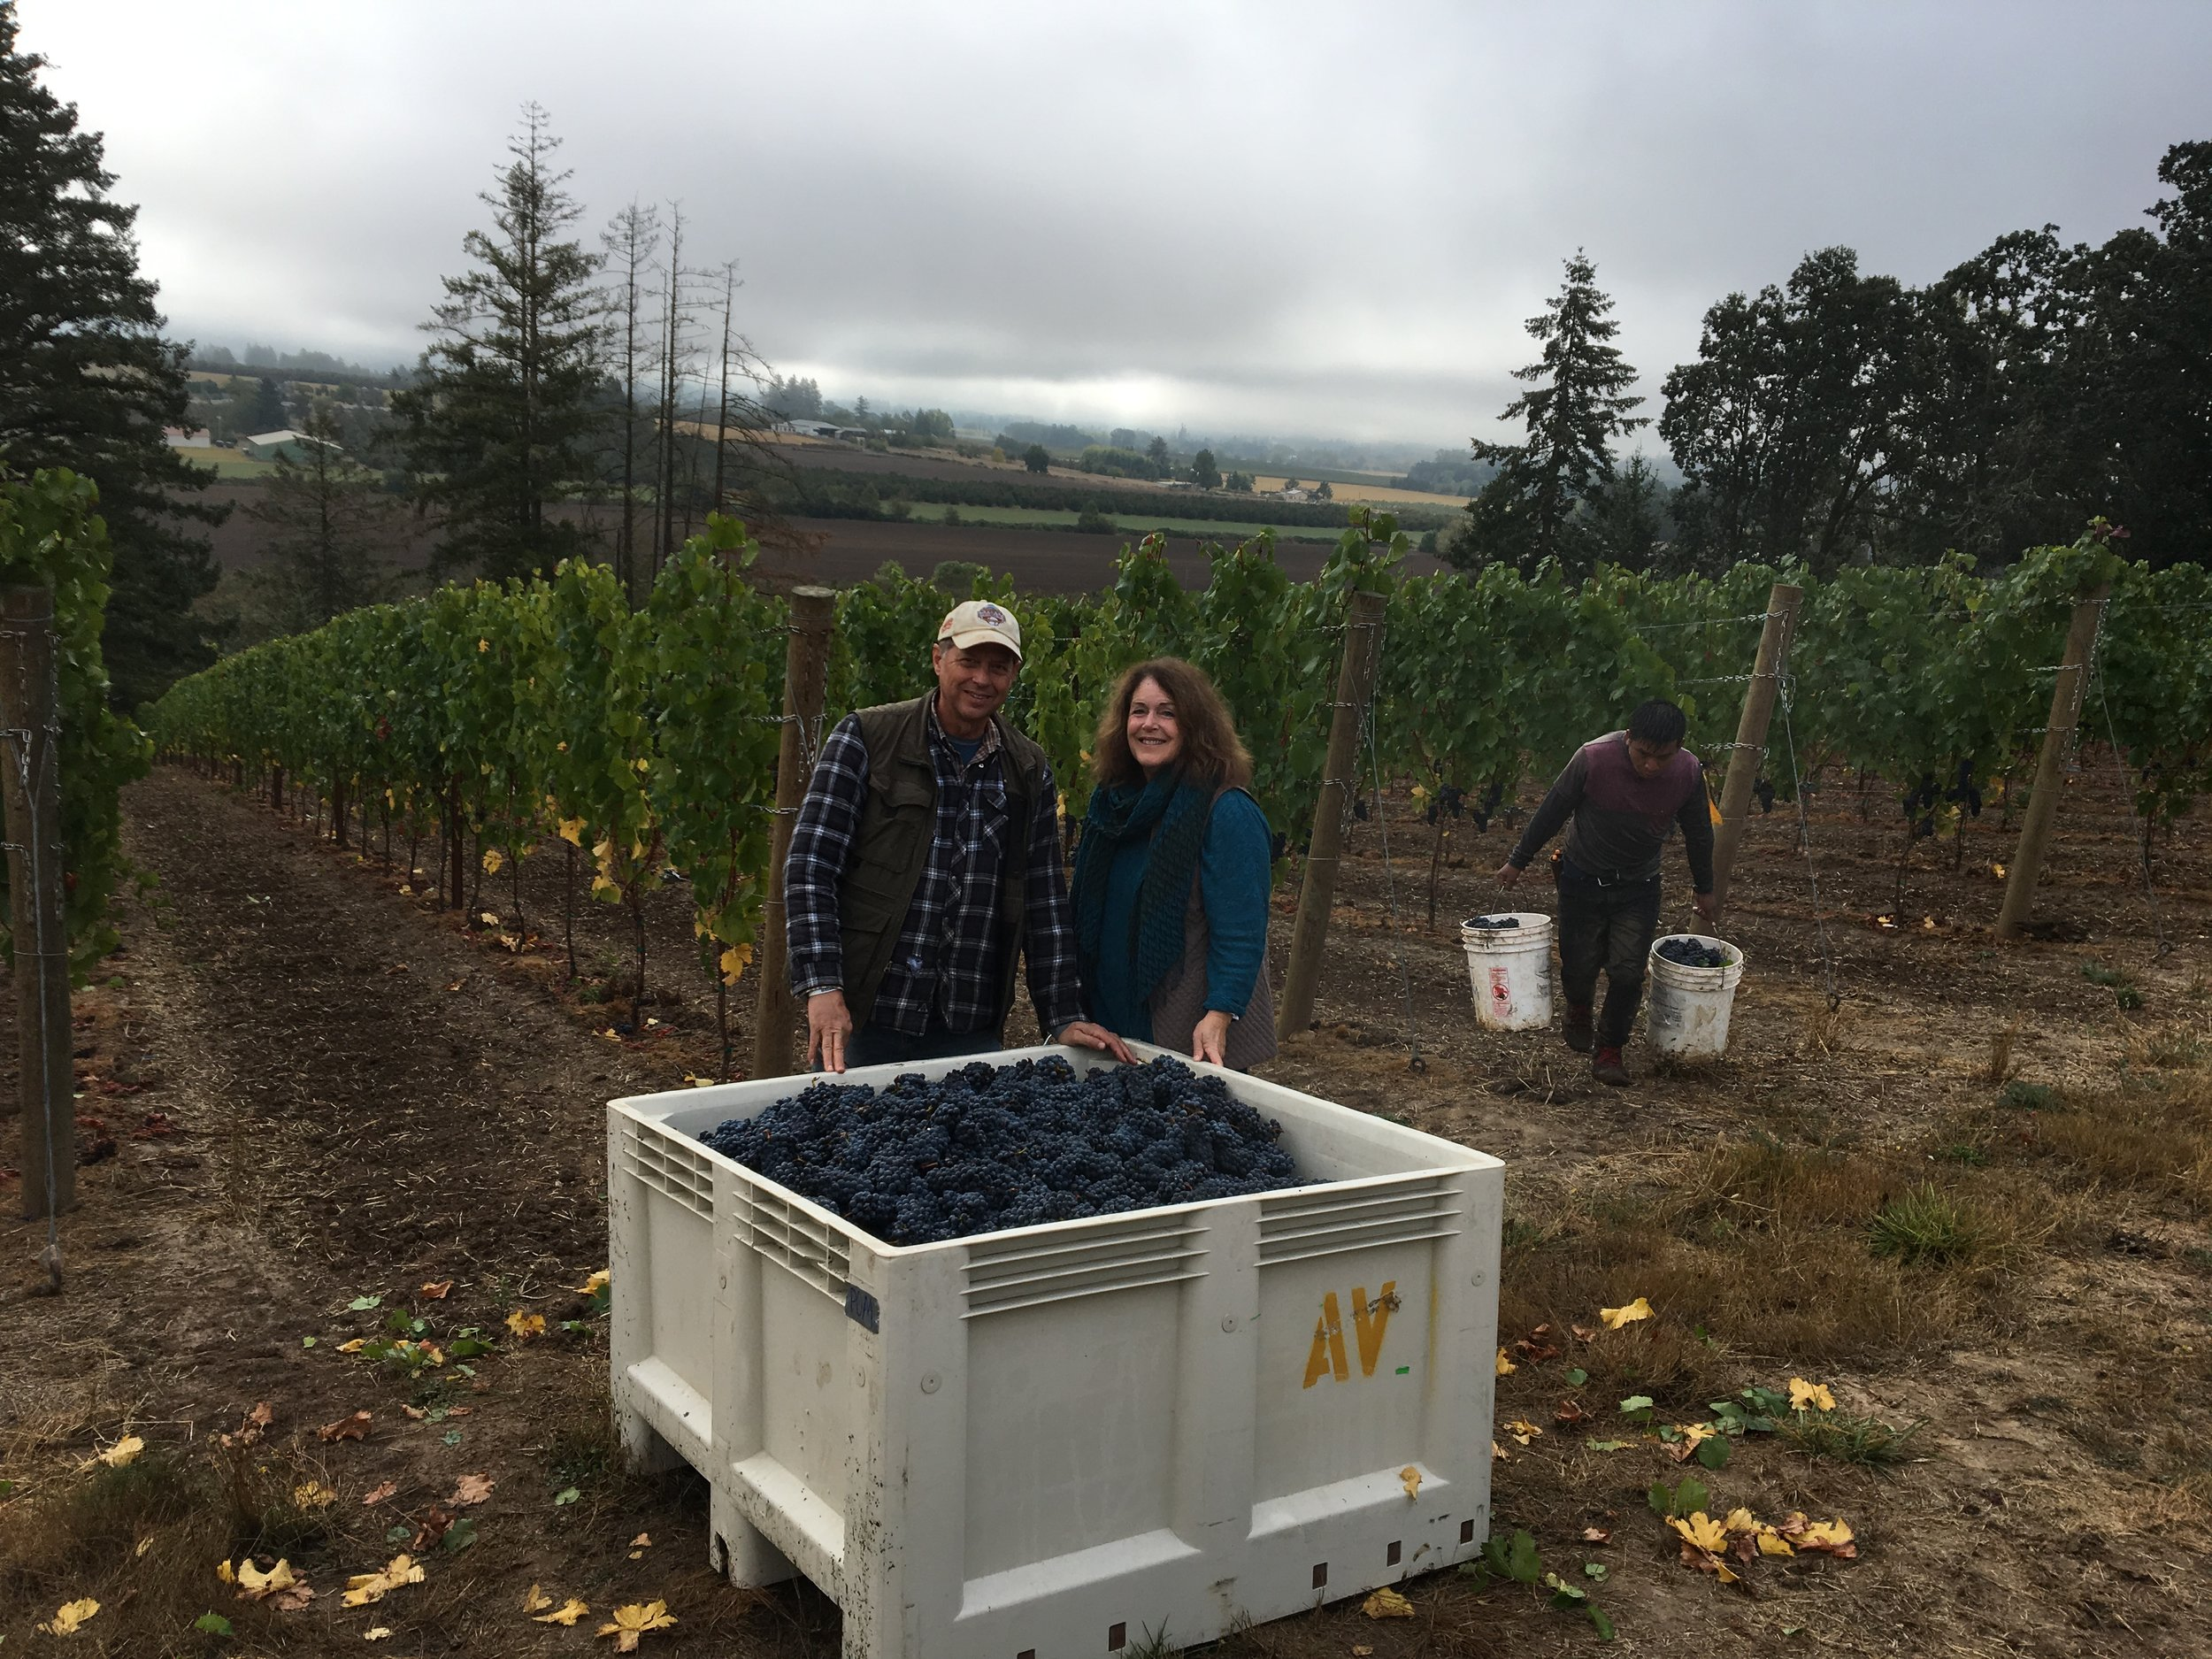 Stewart Vineyard - Stewart Vineyard is a family-owned vineyard dedicated to growing high-quality grapes. The 27-acre property rises from the Chehalem Valley floor in the Ribbon Ridge  AVA northwest of Newberg, Oregon. The vineyard features a variety of Pinot Noir clones and Chardonnay on rootstock grown for  varied and fertile soil that has not been cultivated for over 100 years. Sustainable farming practices recognize the importance of terroir and the health and quality of the soil to the final product. Stewart Vineyard is seeking to verify it's sustainability practices through the LIVE certification process. We are looking forward to developing future blocks of fruit on the site.